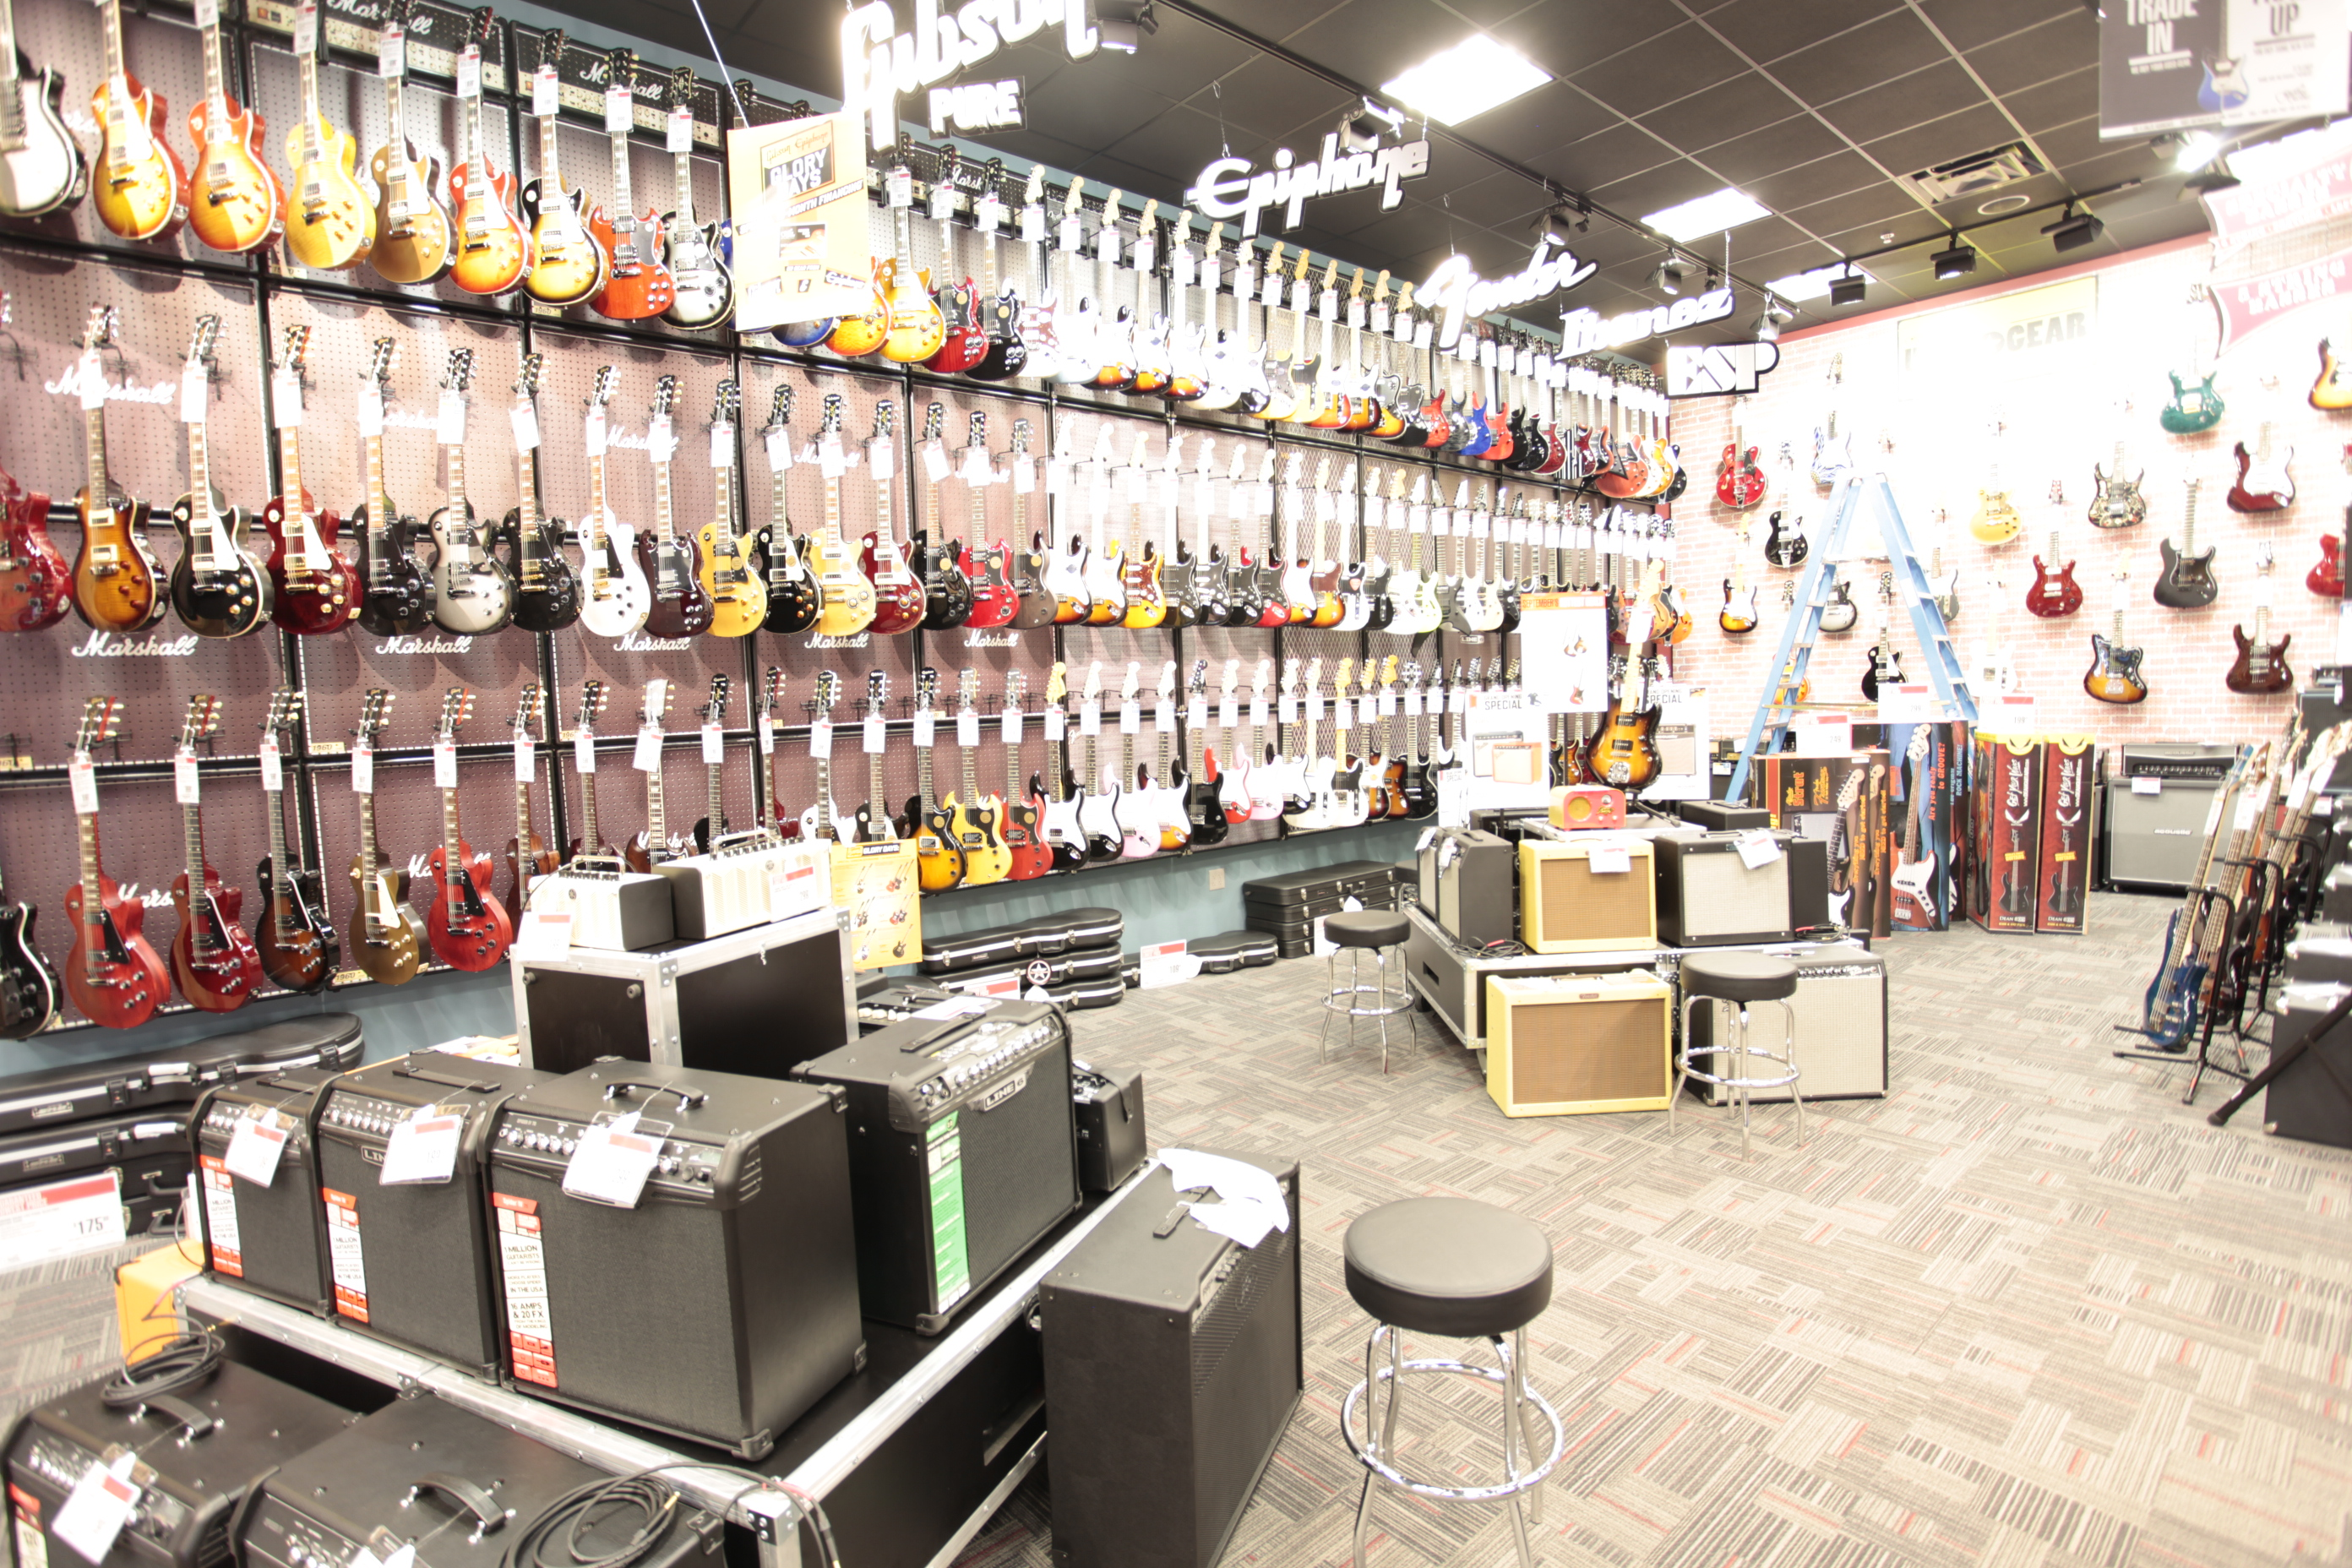 Guitar Center Lessons image 6